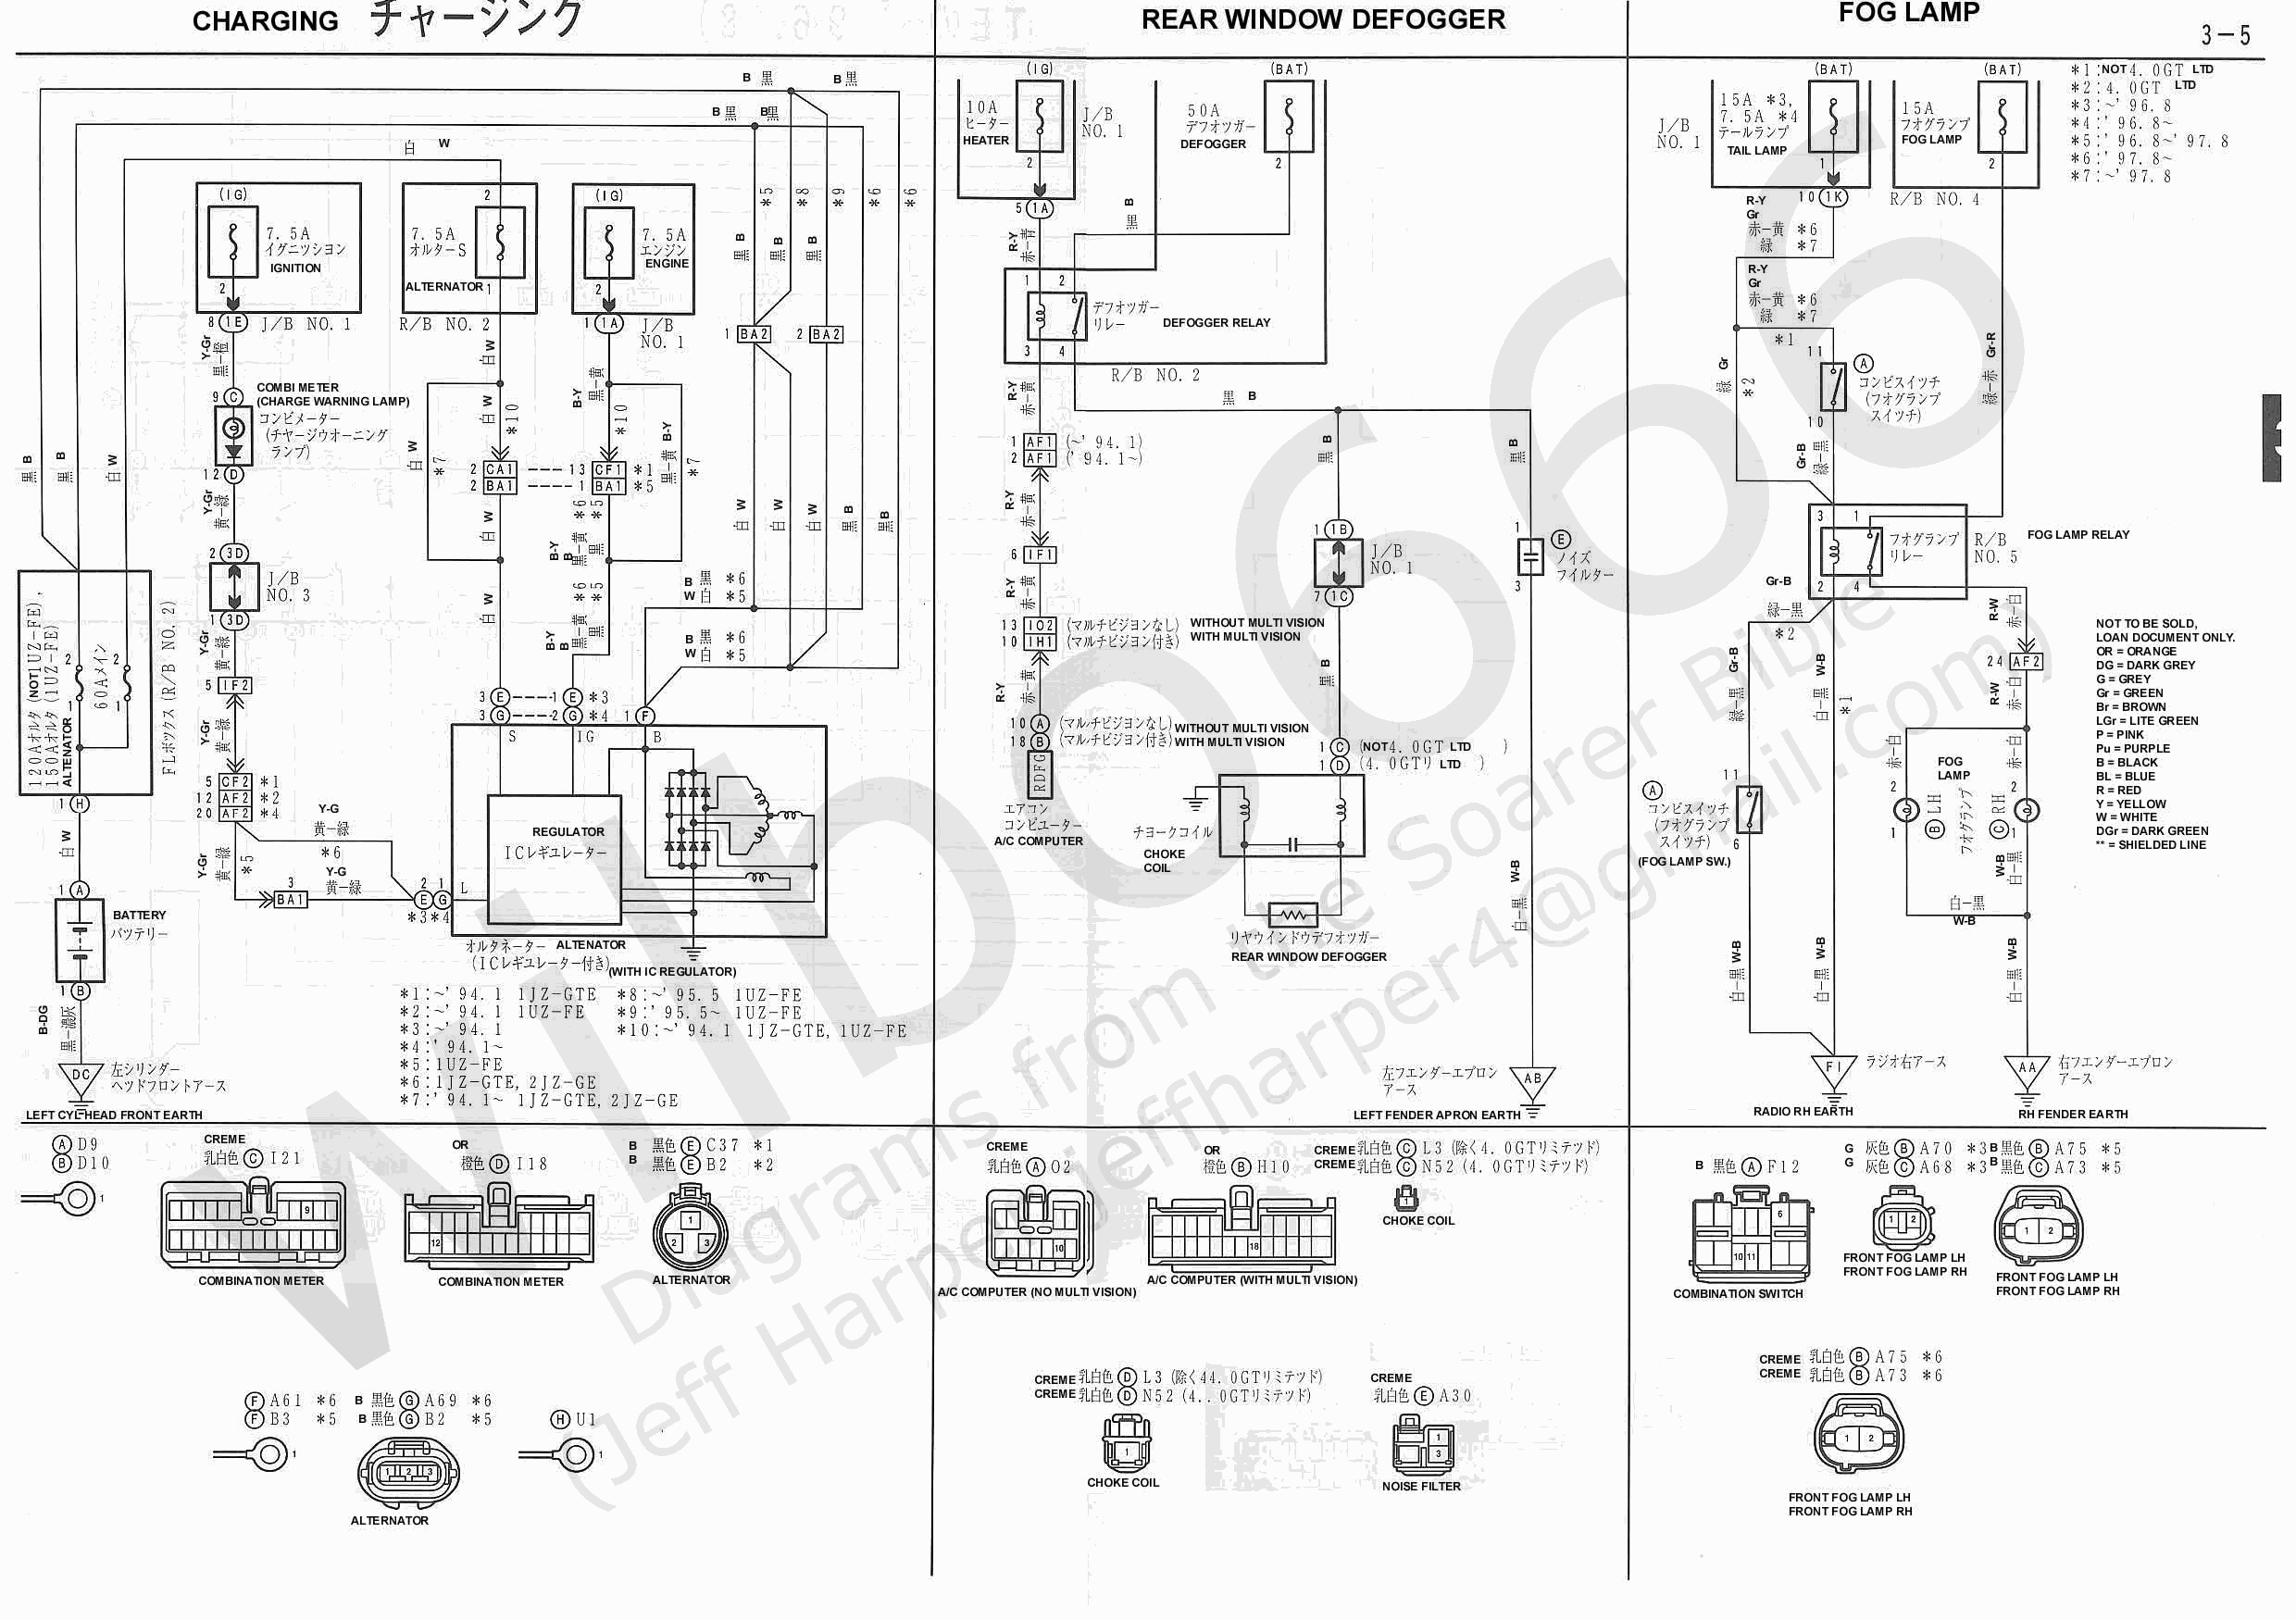 xZZ3x Electrical Wiring Diagram 6737105 3 5?resize\\\\\\\\\\\\\\\\\\\\\\\\\\\\\\\=665%2C469 transmission wiring diagram wiring diagram simonand transmission wire diagram 2000 toyota tundra at gsmx.co